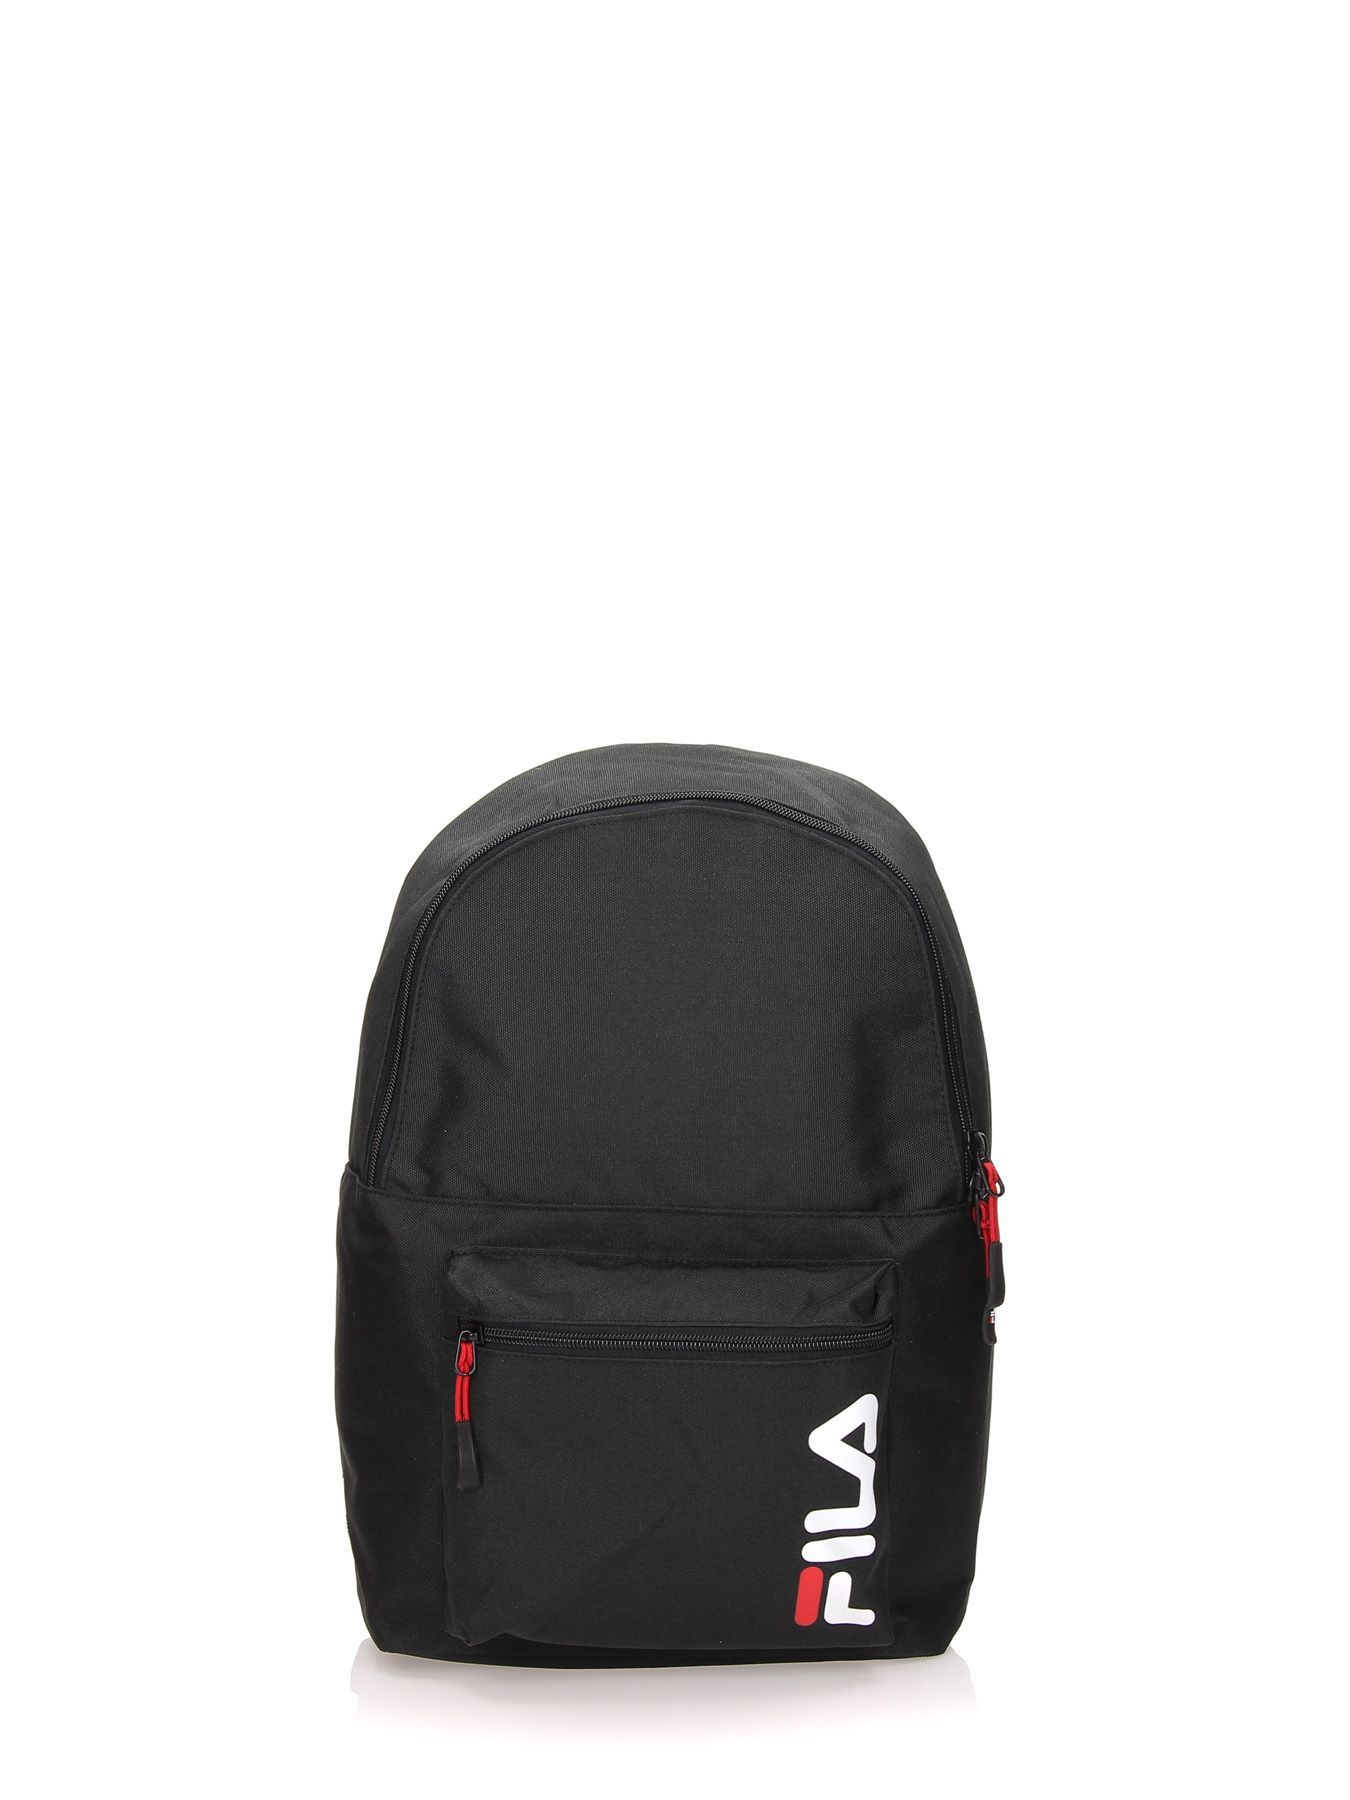 7f36a81c7f2d FILA BACKPACK S COOL.  fila  bags  lining  polyester  backpacks ...